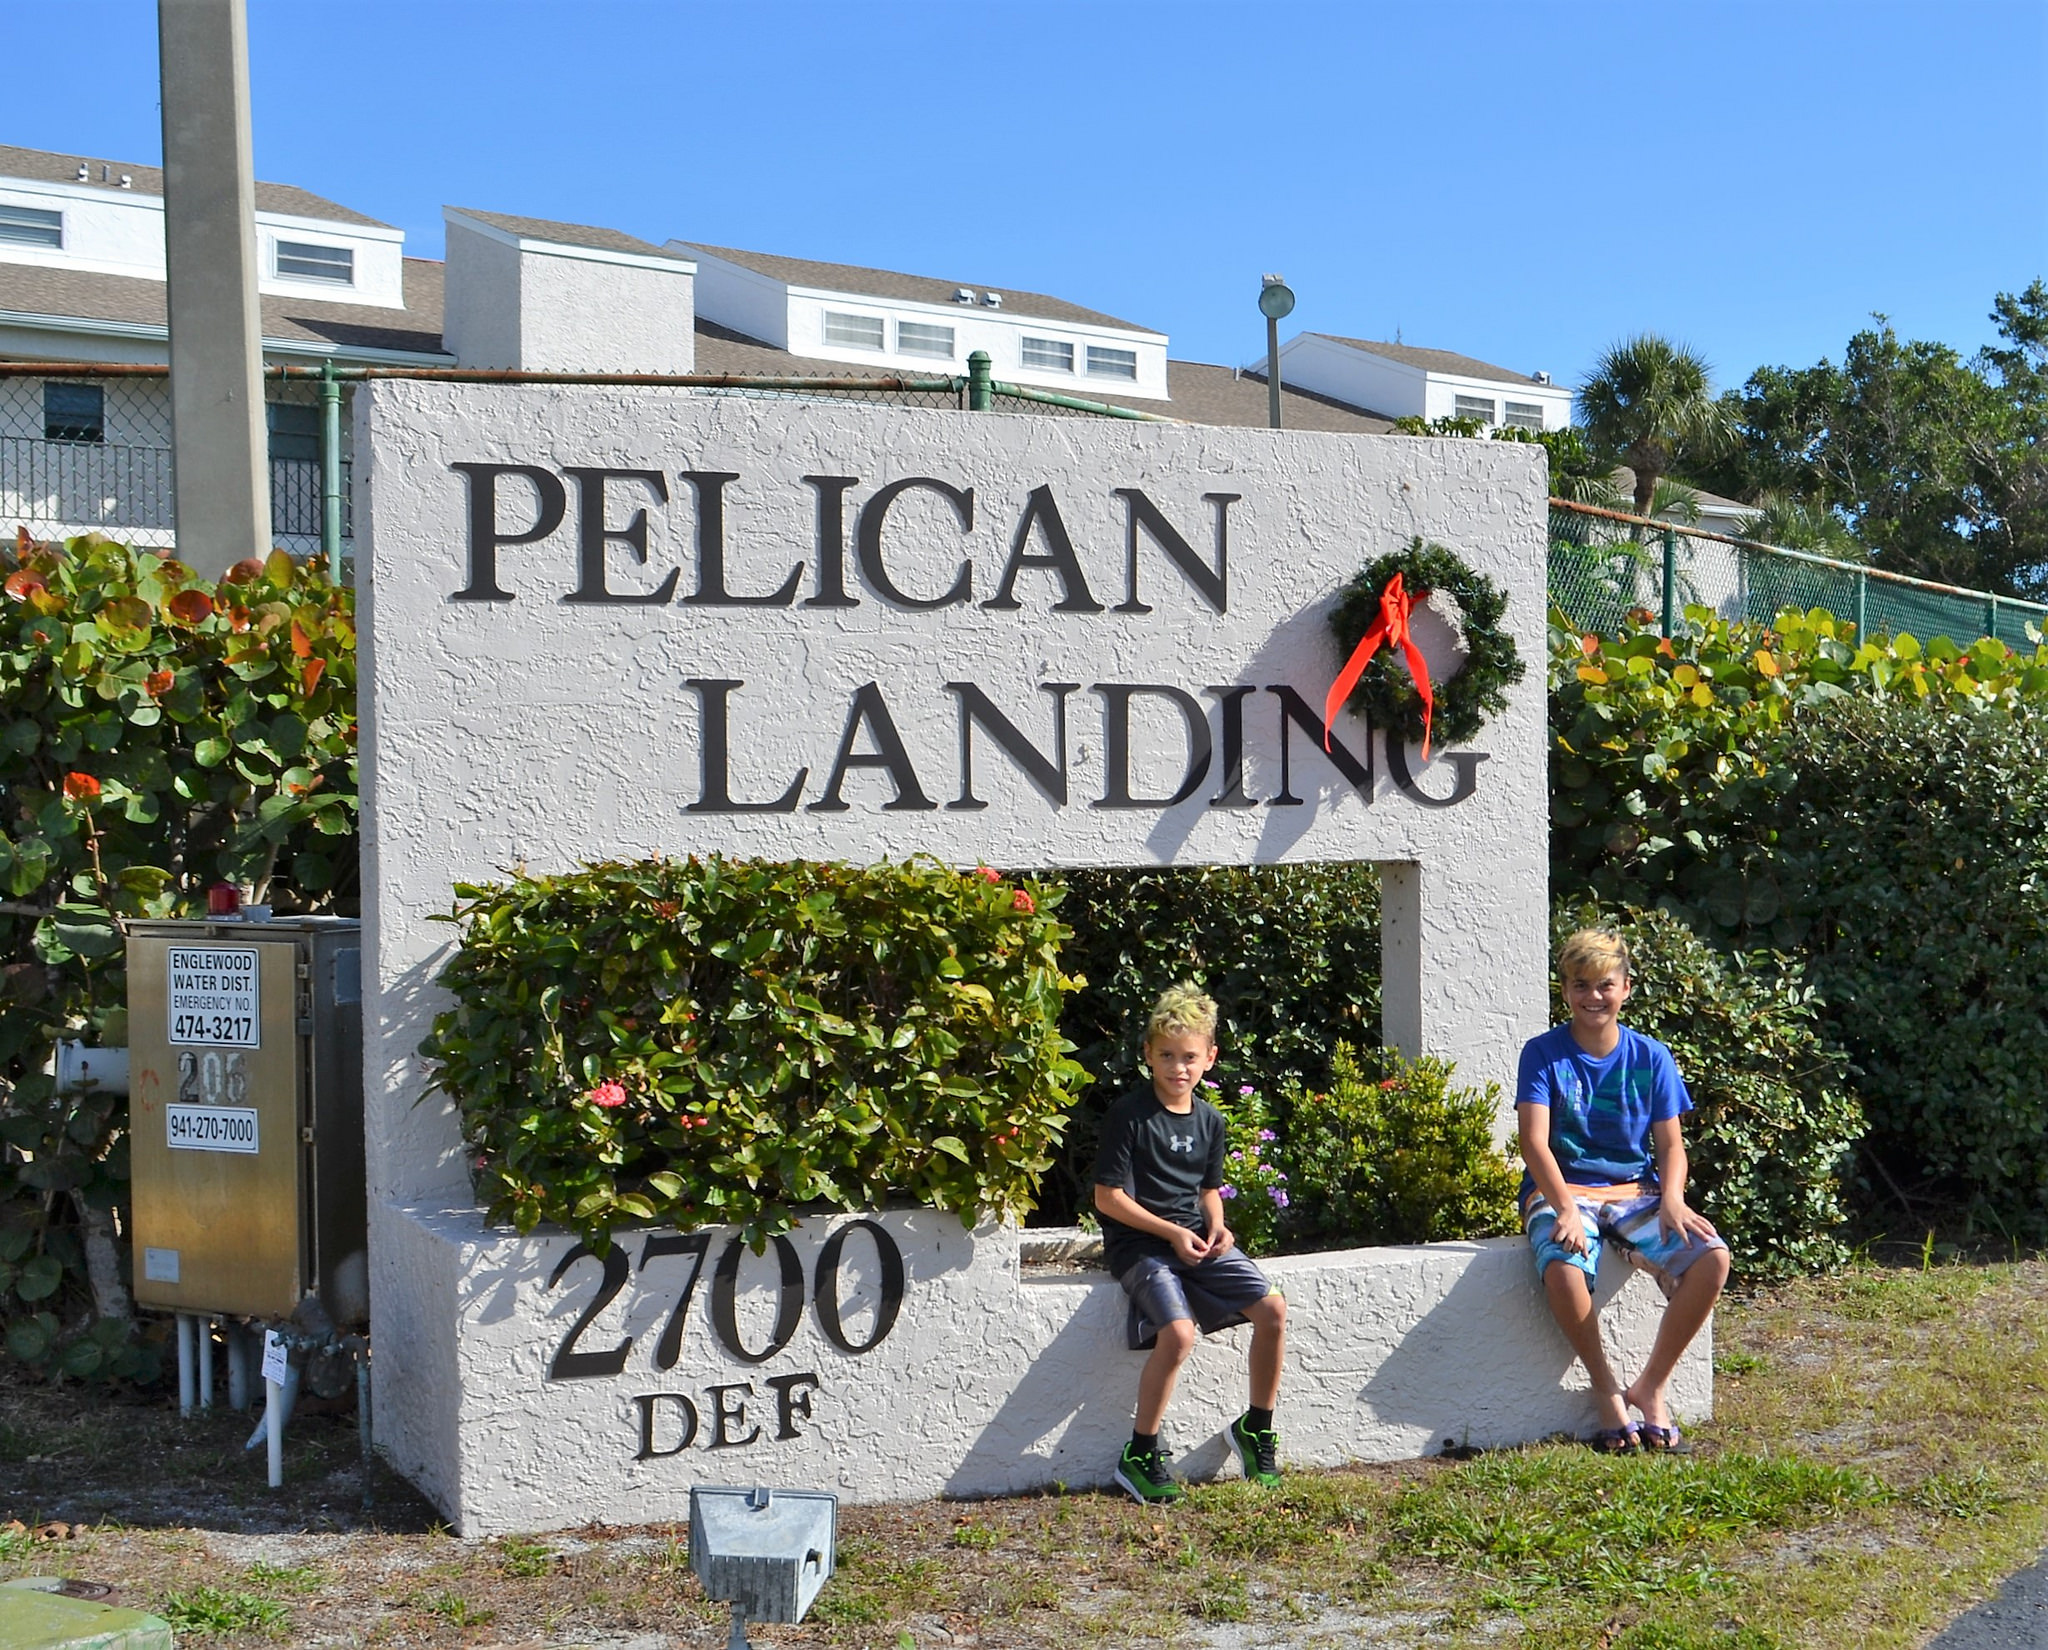 Where to stay in Manasota Key Florida - Pelican Landing